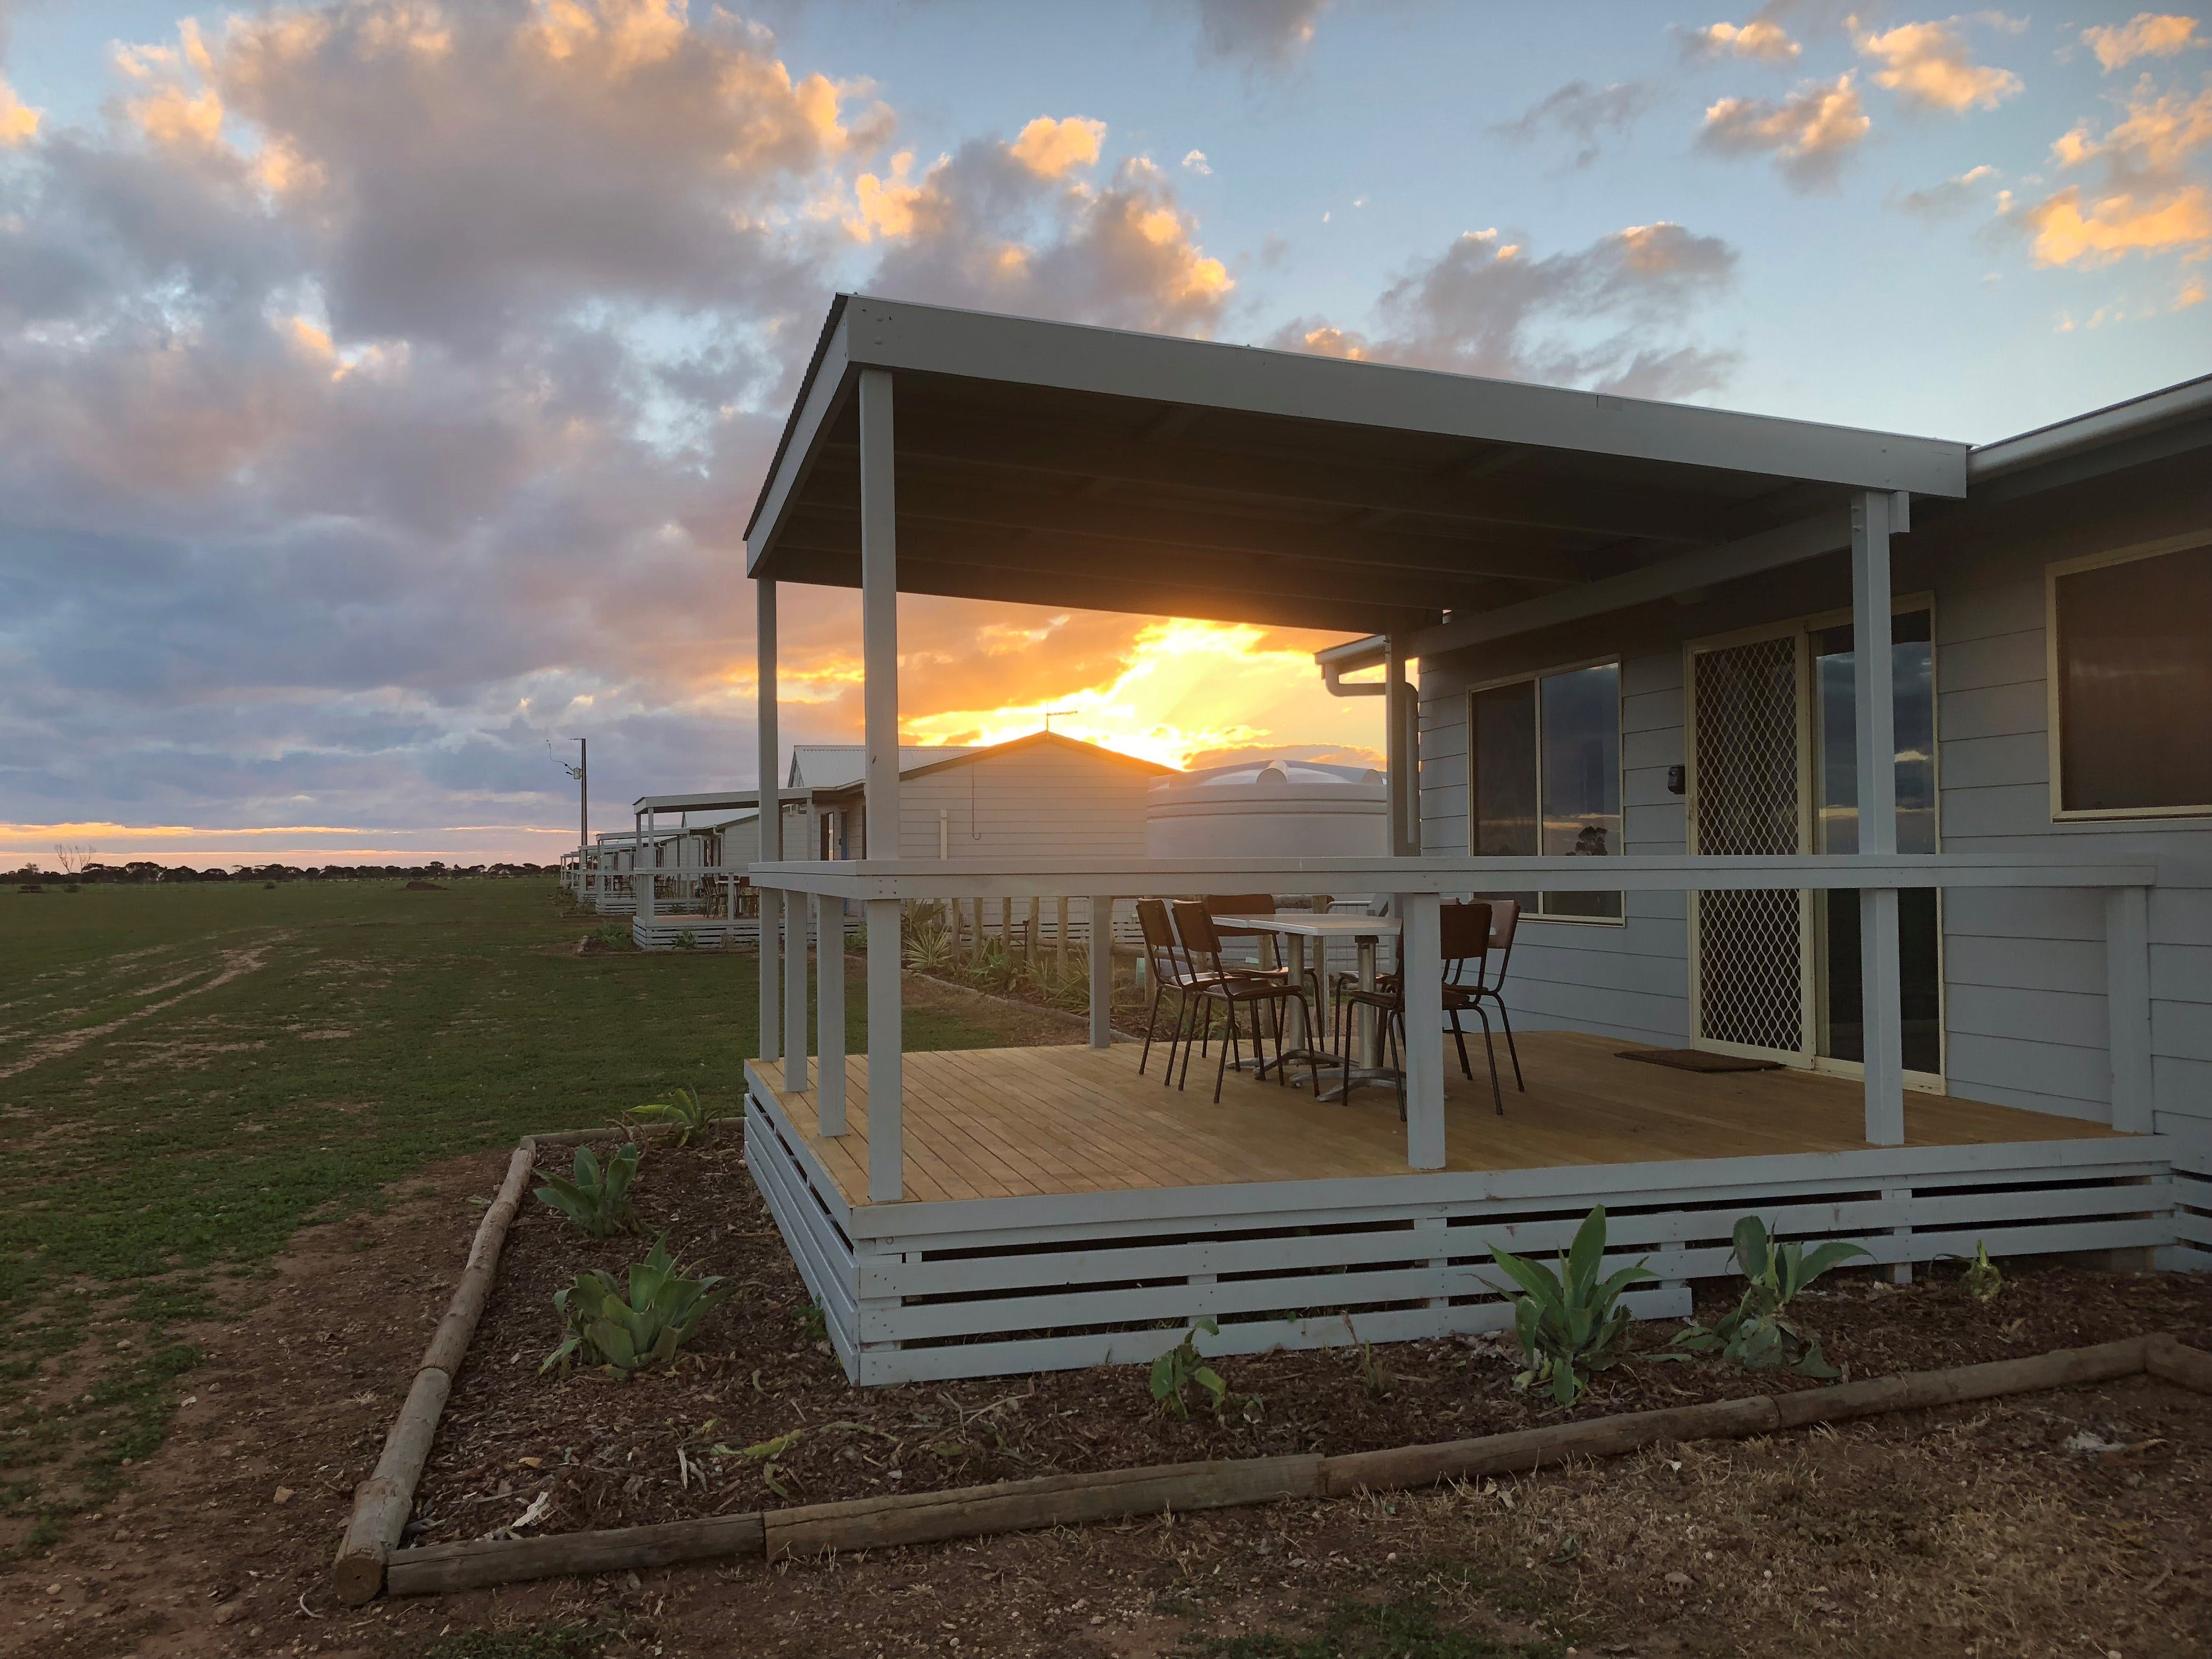 Tarnasey Farm - Schilling's Shack - Kingaroy Accommodation